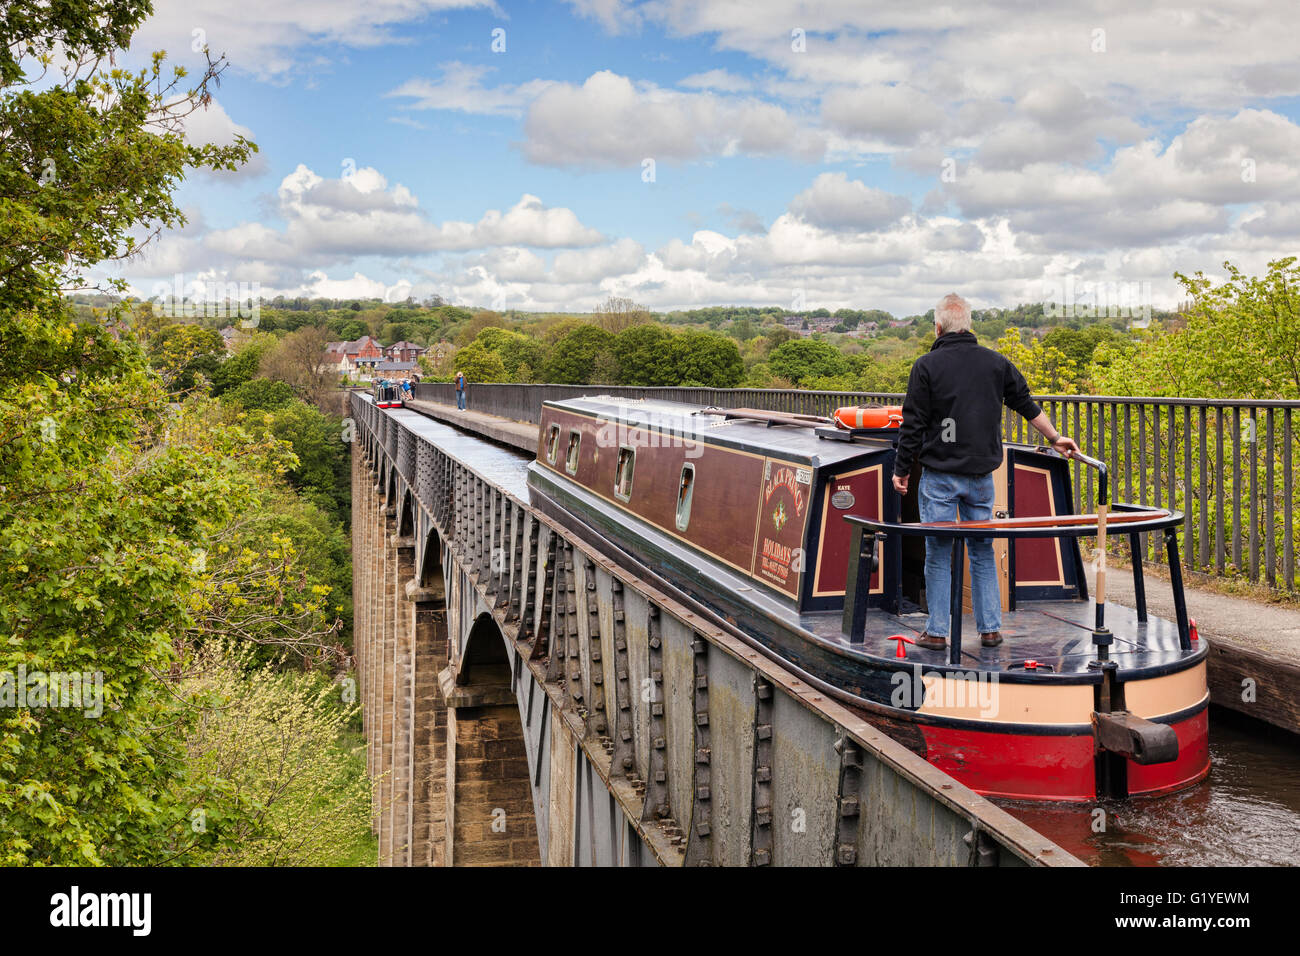 L'homme avec sa main sur le timon de direction, 15-04 sur le pont-canal de Pontcysyllte, construit par Thomas Photo Stock